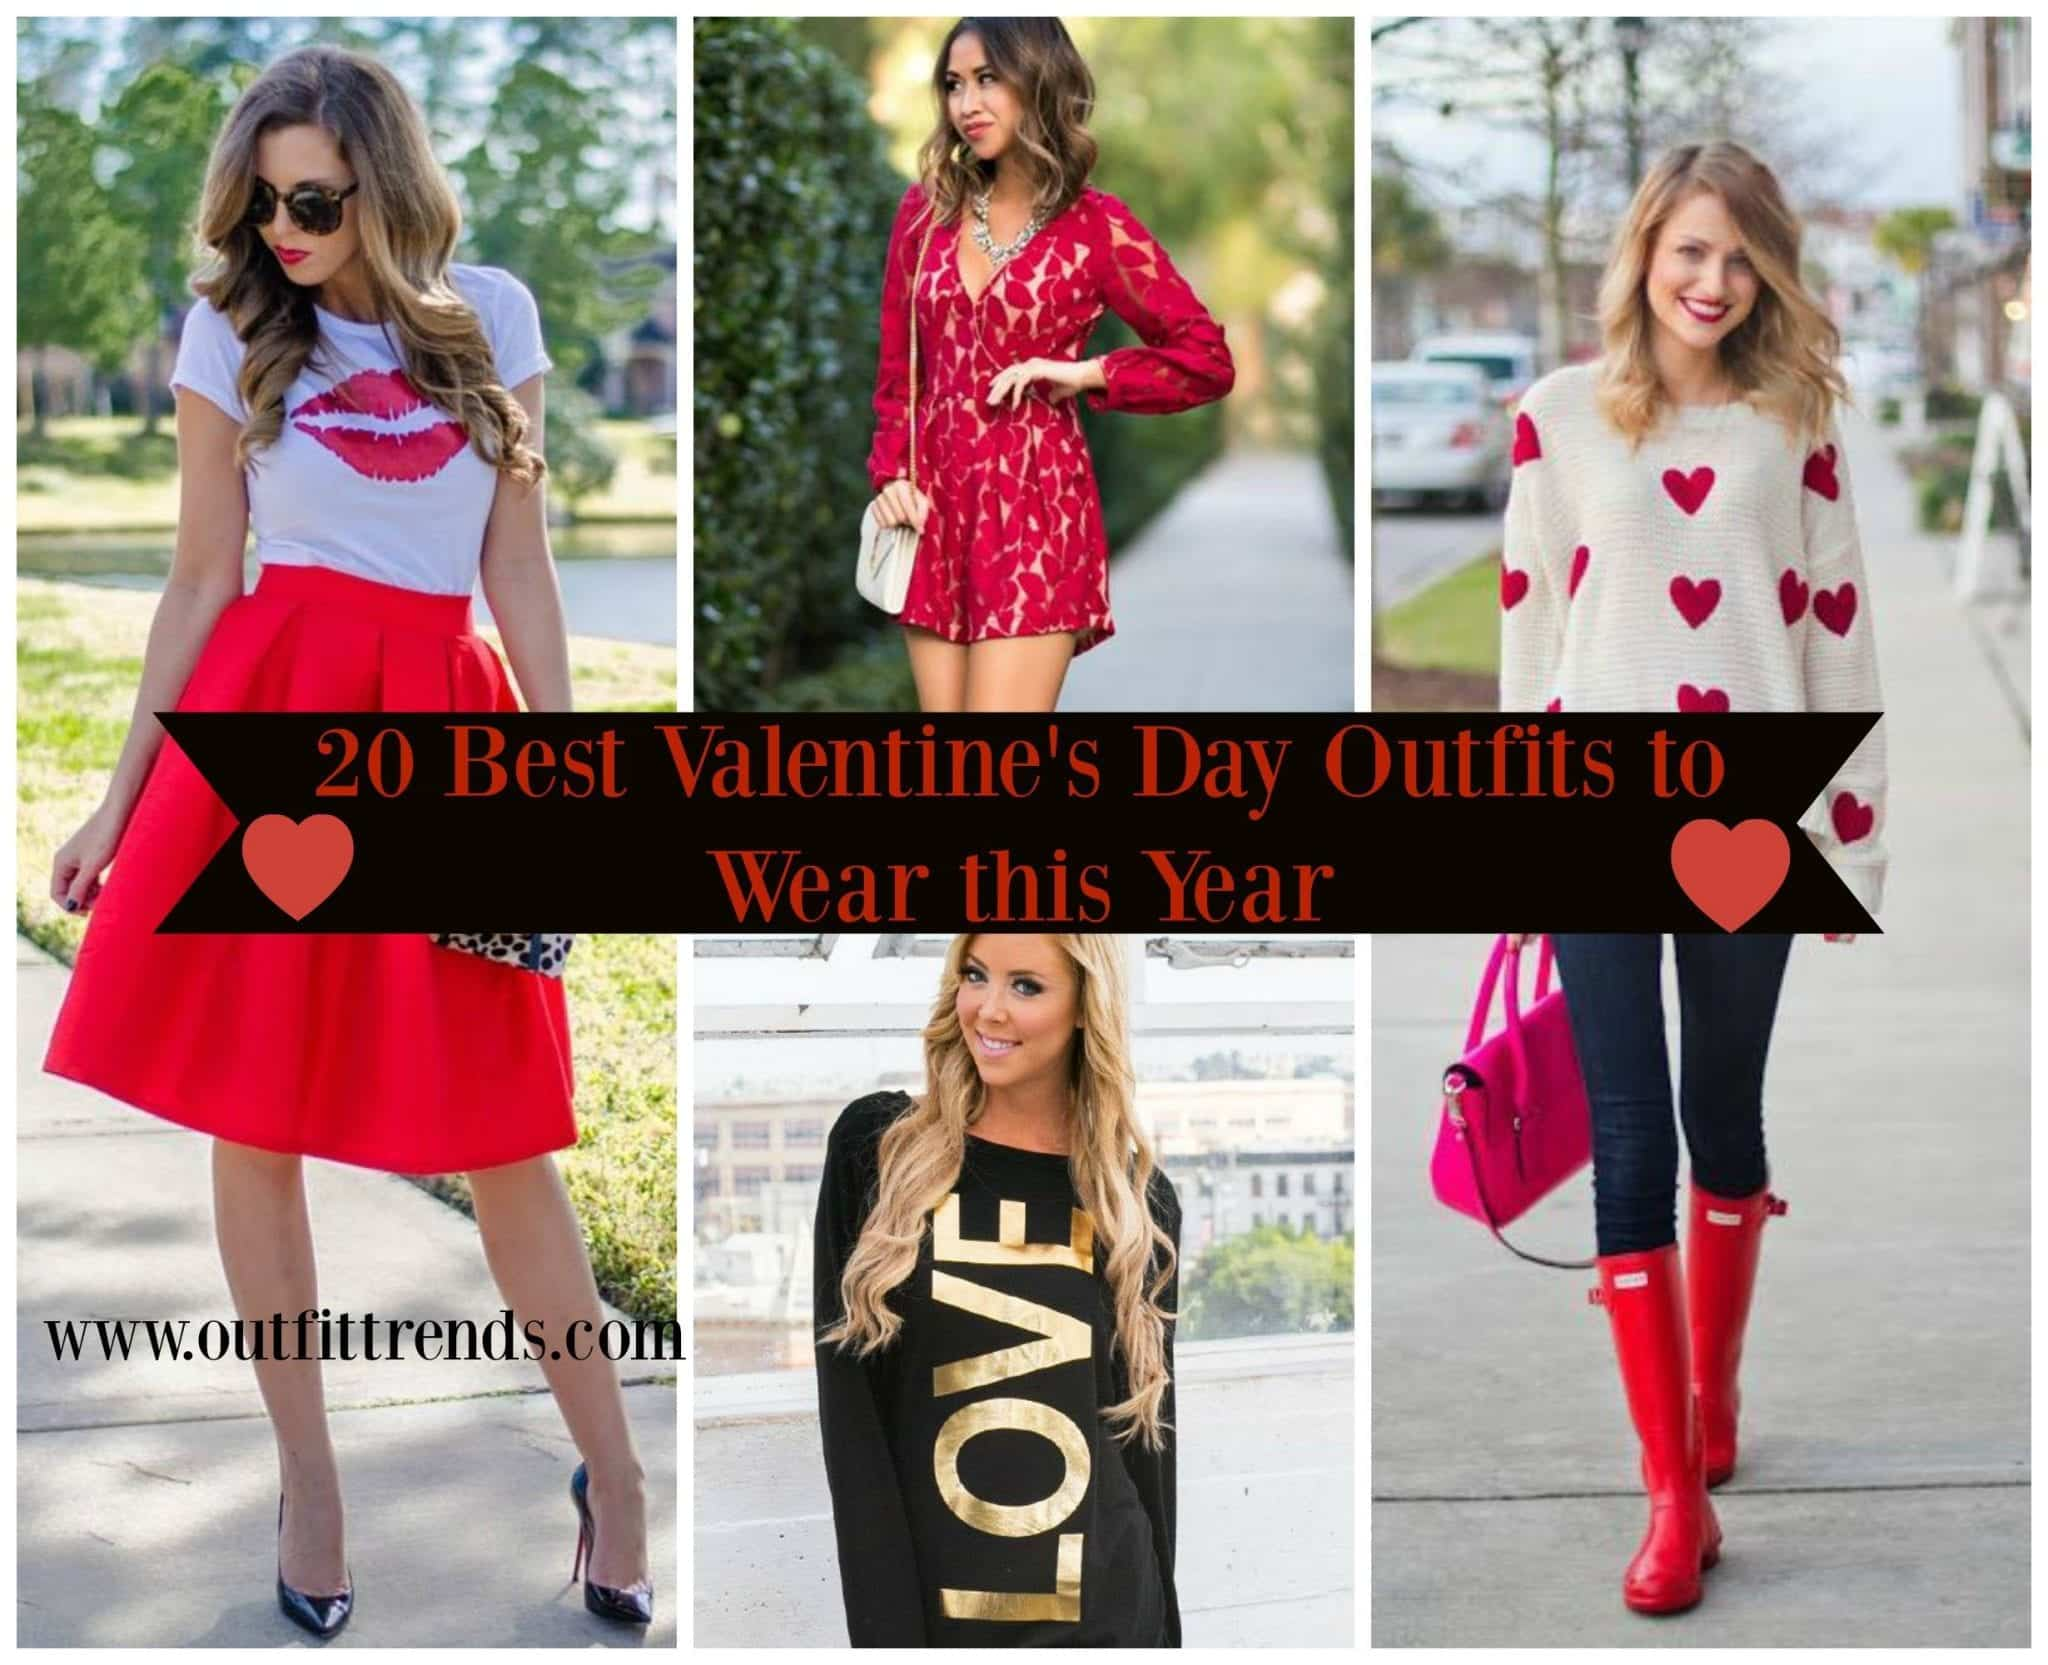 Top 20 Amazing Outfits Ideas For Valentine's Day 2017